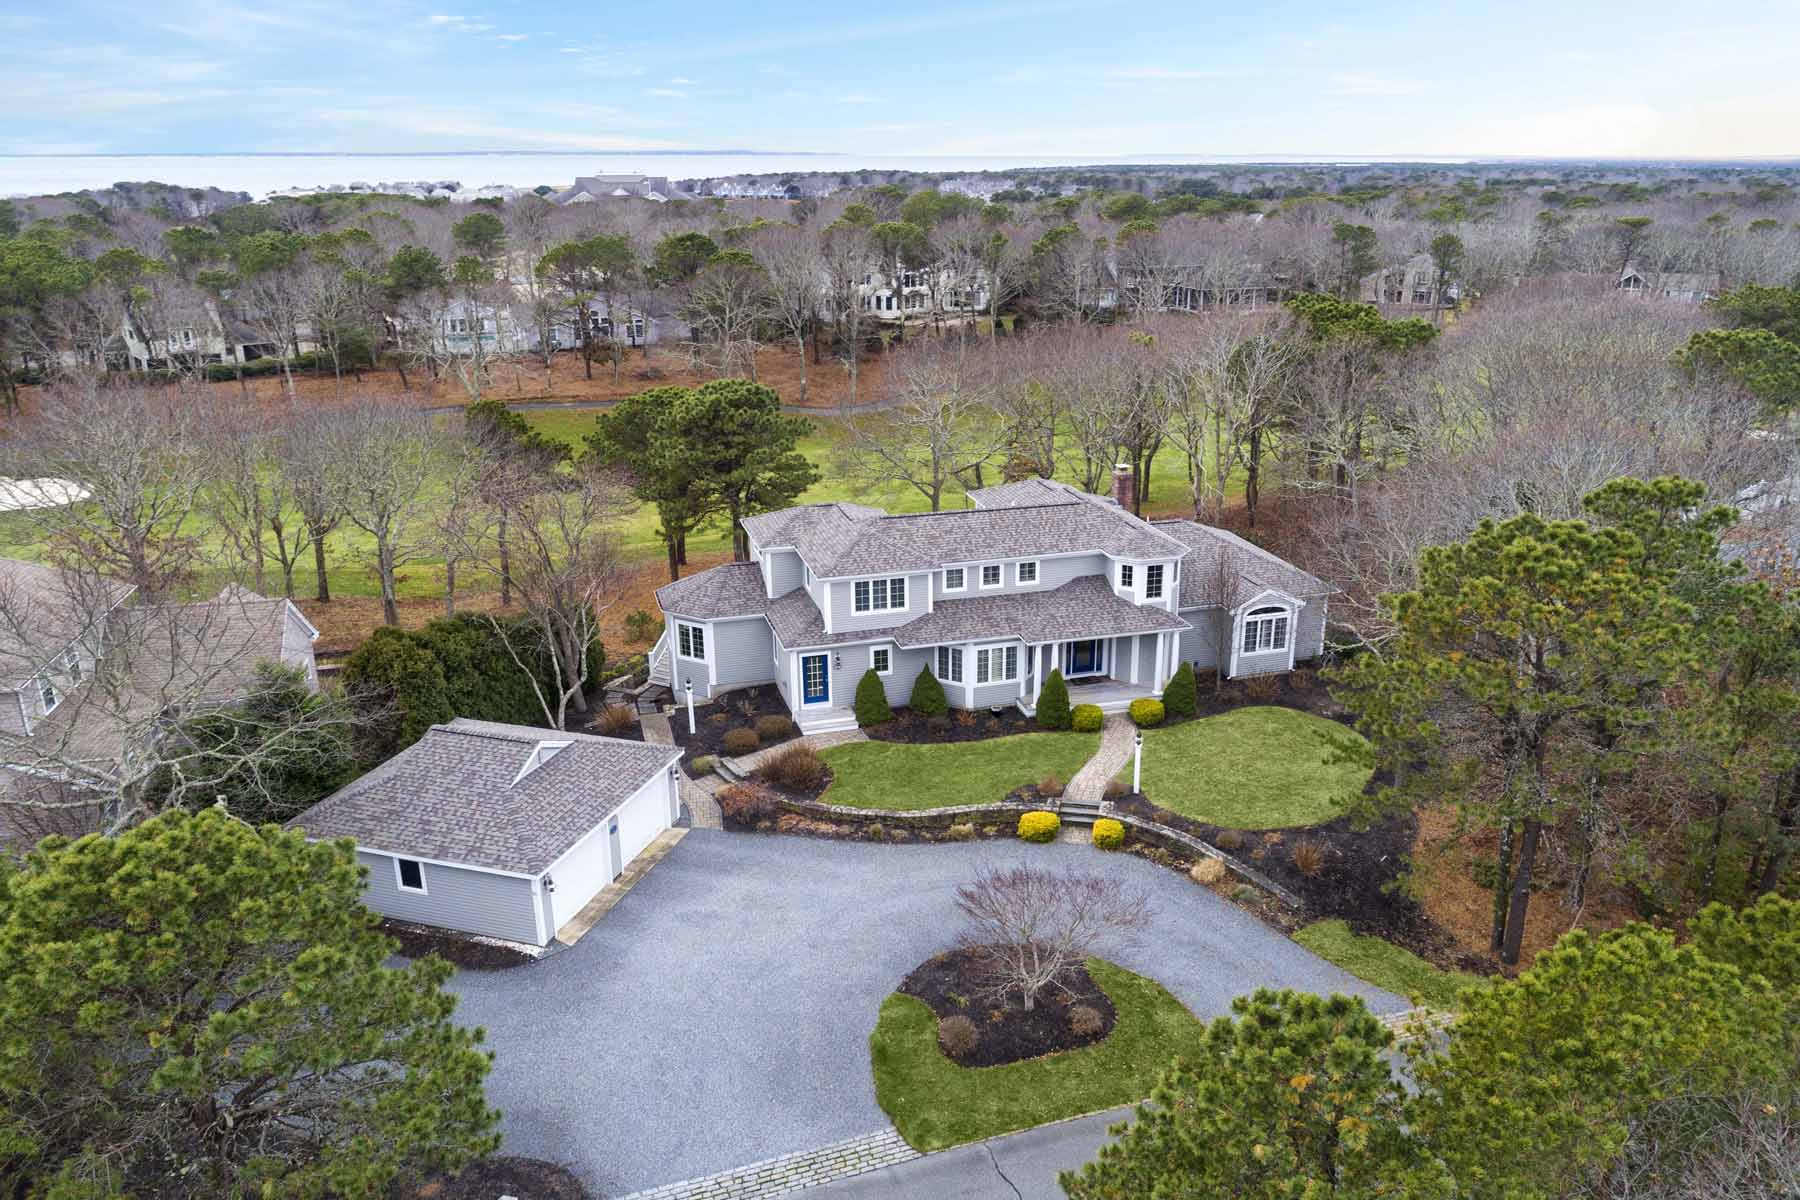 Single Family Homes for Active at SPACIOUS GOLF FRONT HOME - 17TH FAIRWAY 51 Greensward Circle New Seabury, Massachusetts 02649 United States